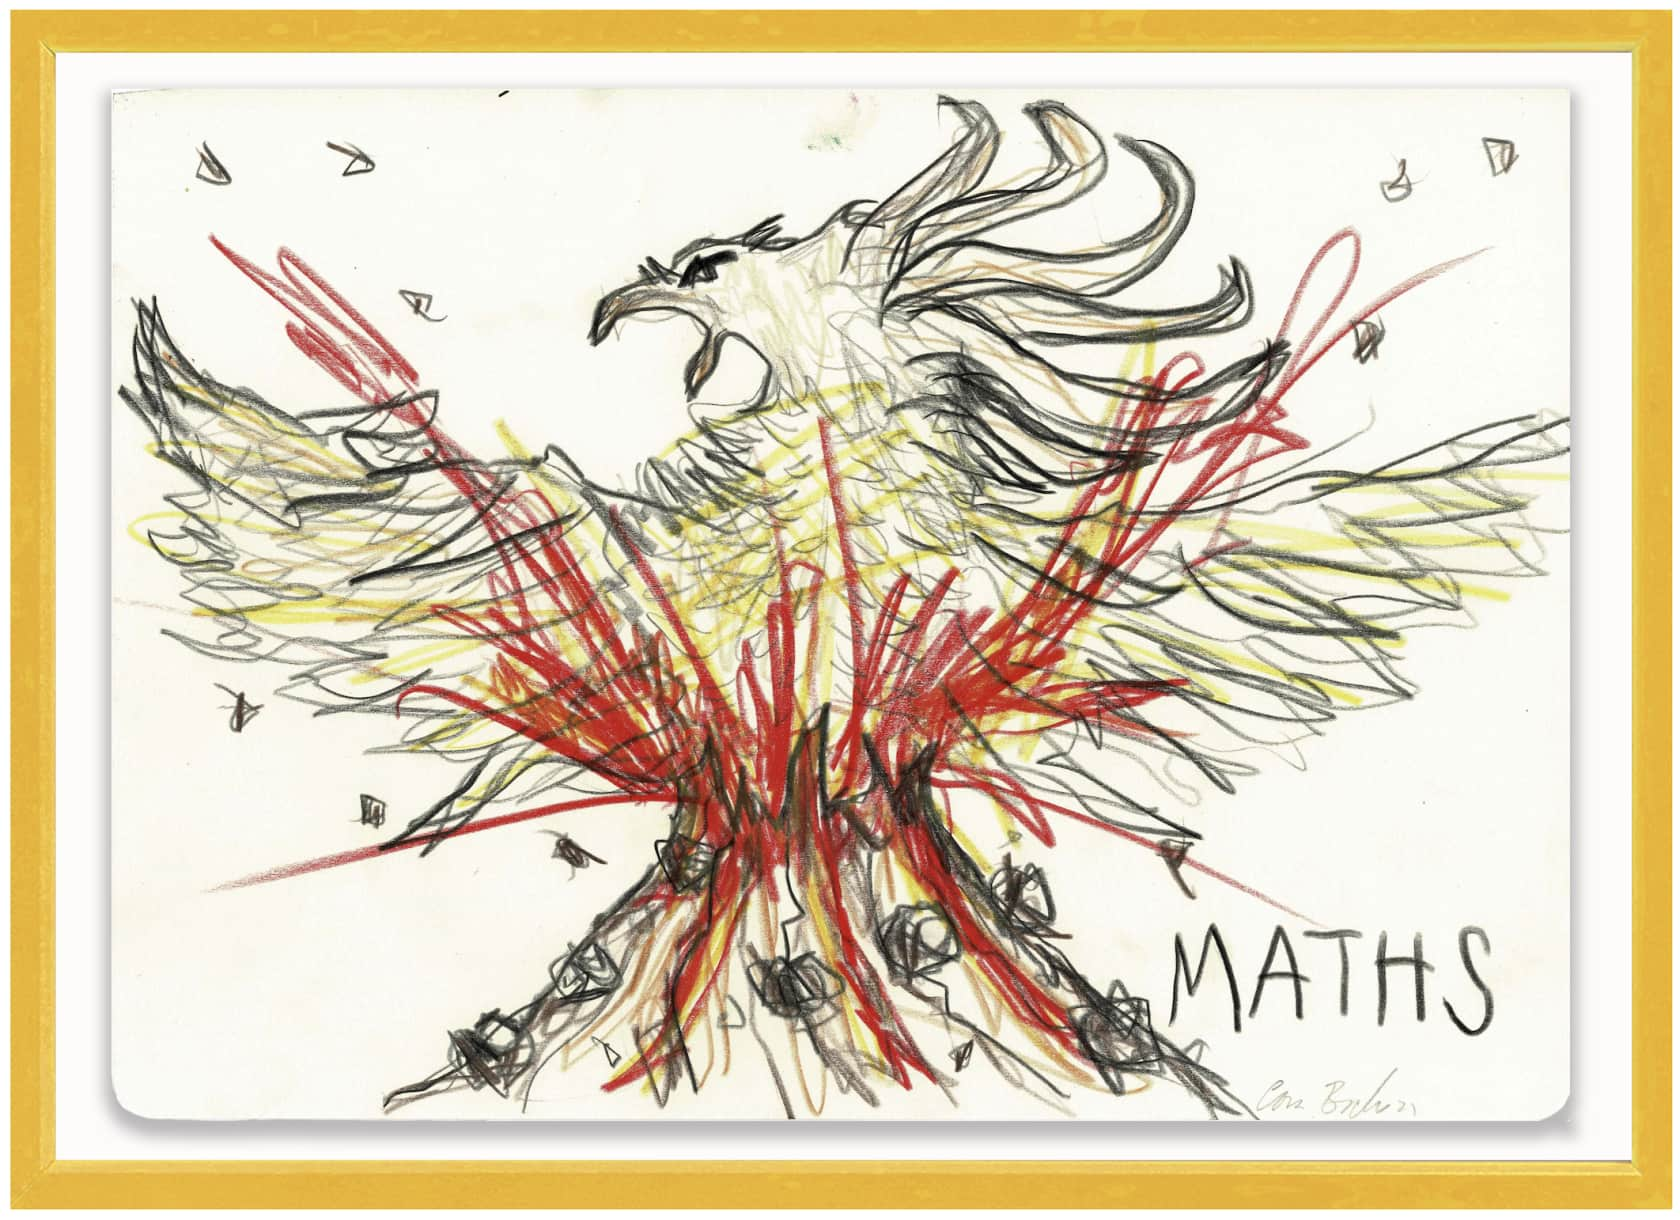 the connor brothers Maths Crayon on paper